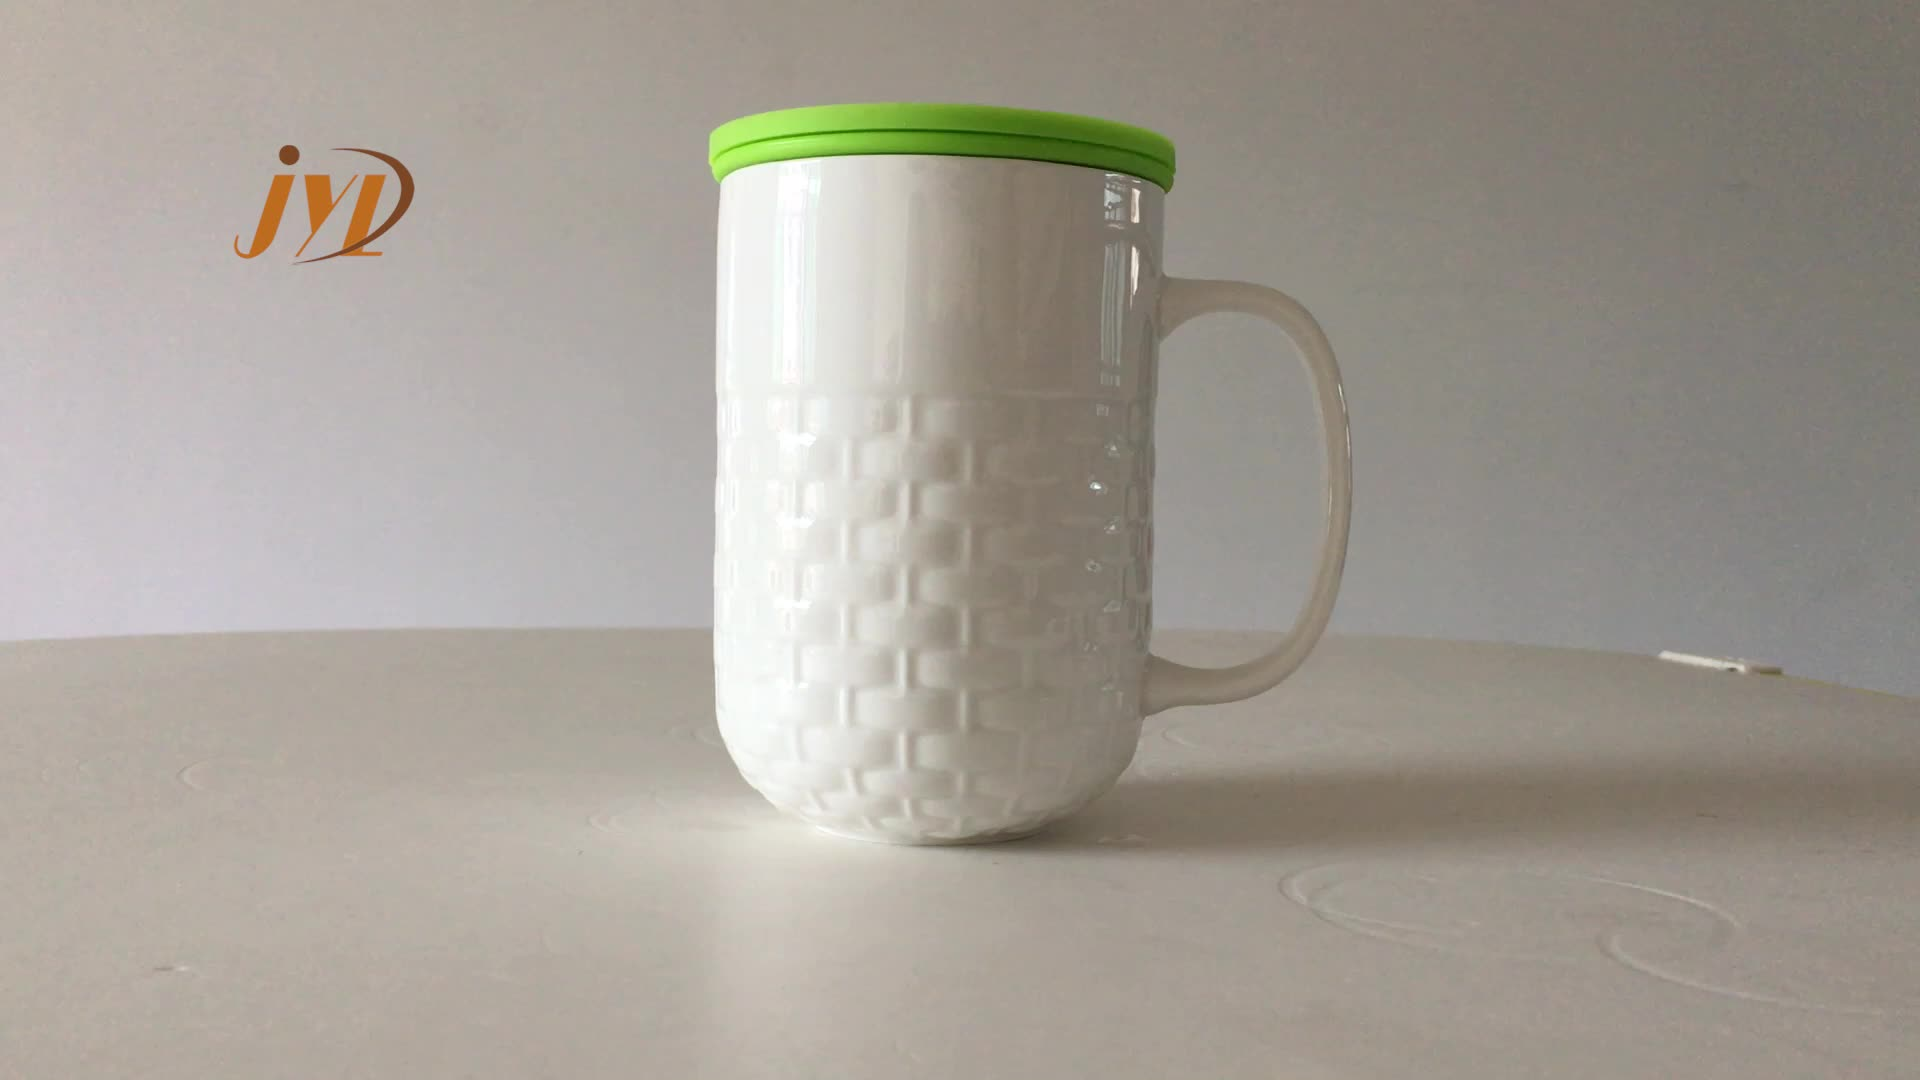 JINYUANLI factory outlet multiple color office used custom reusable ceramic tea mug infuser cup with lid